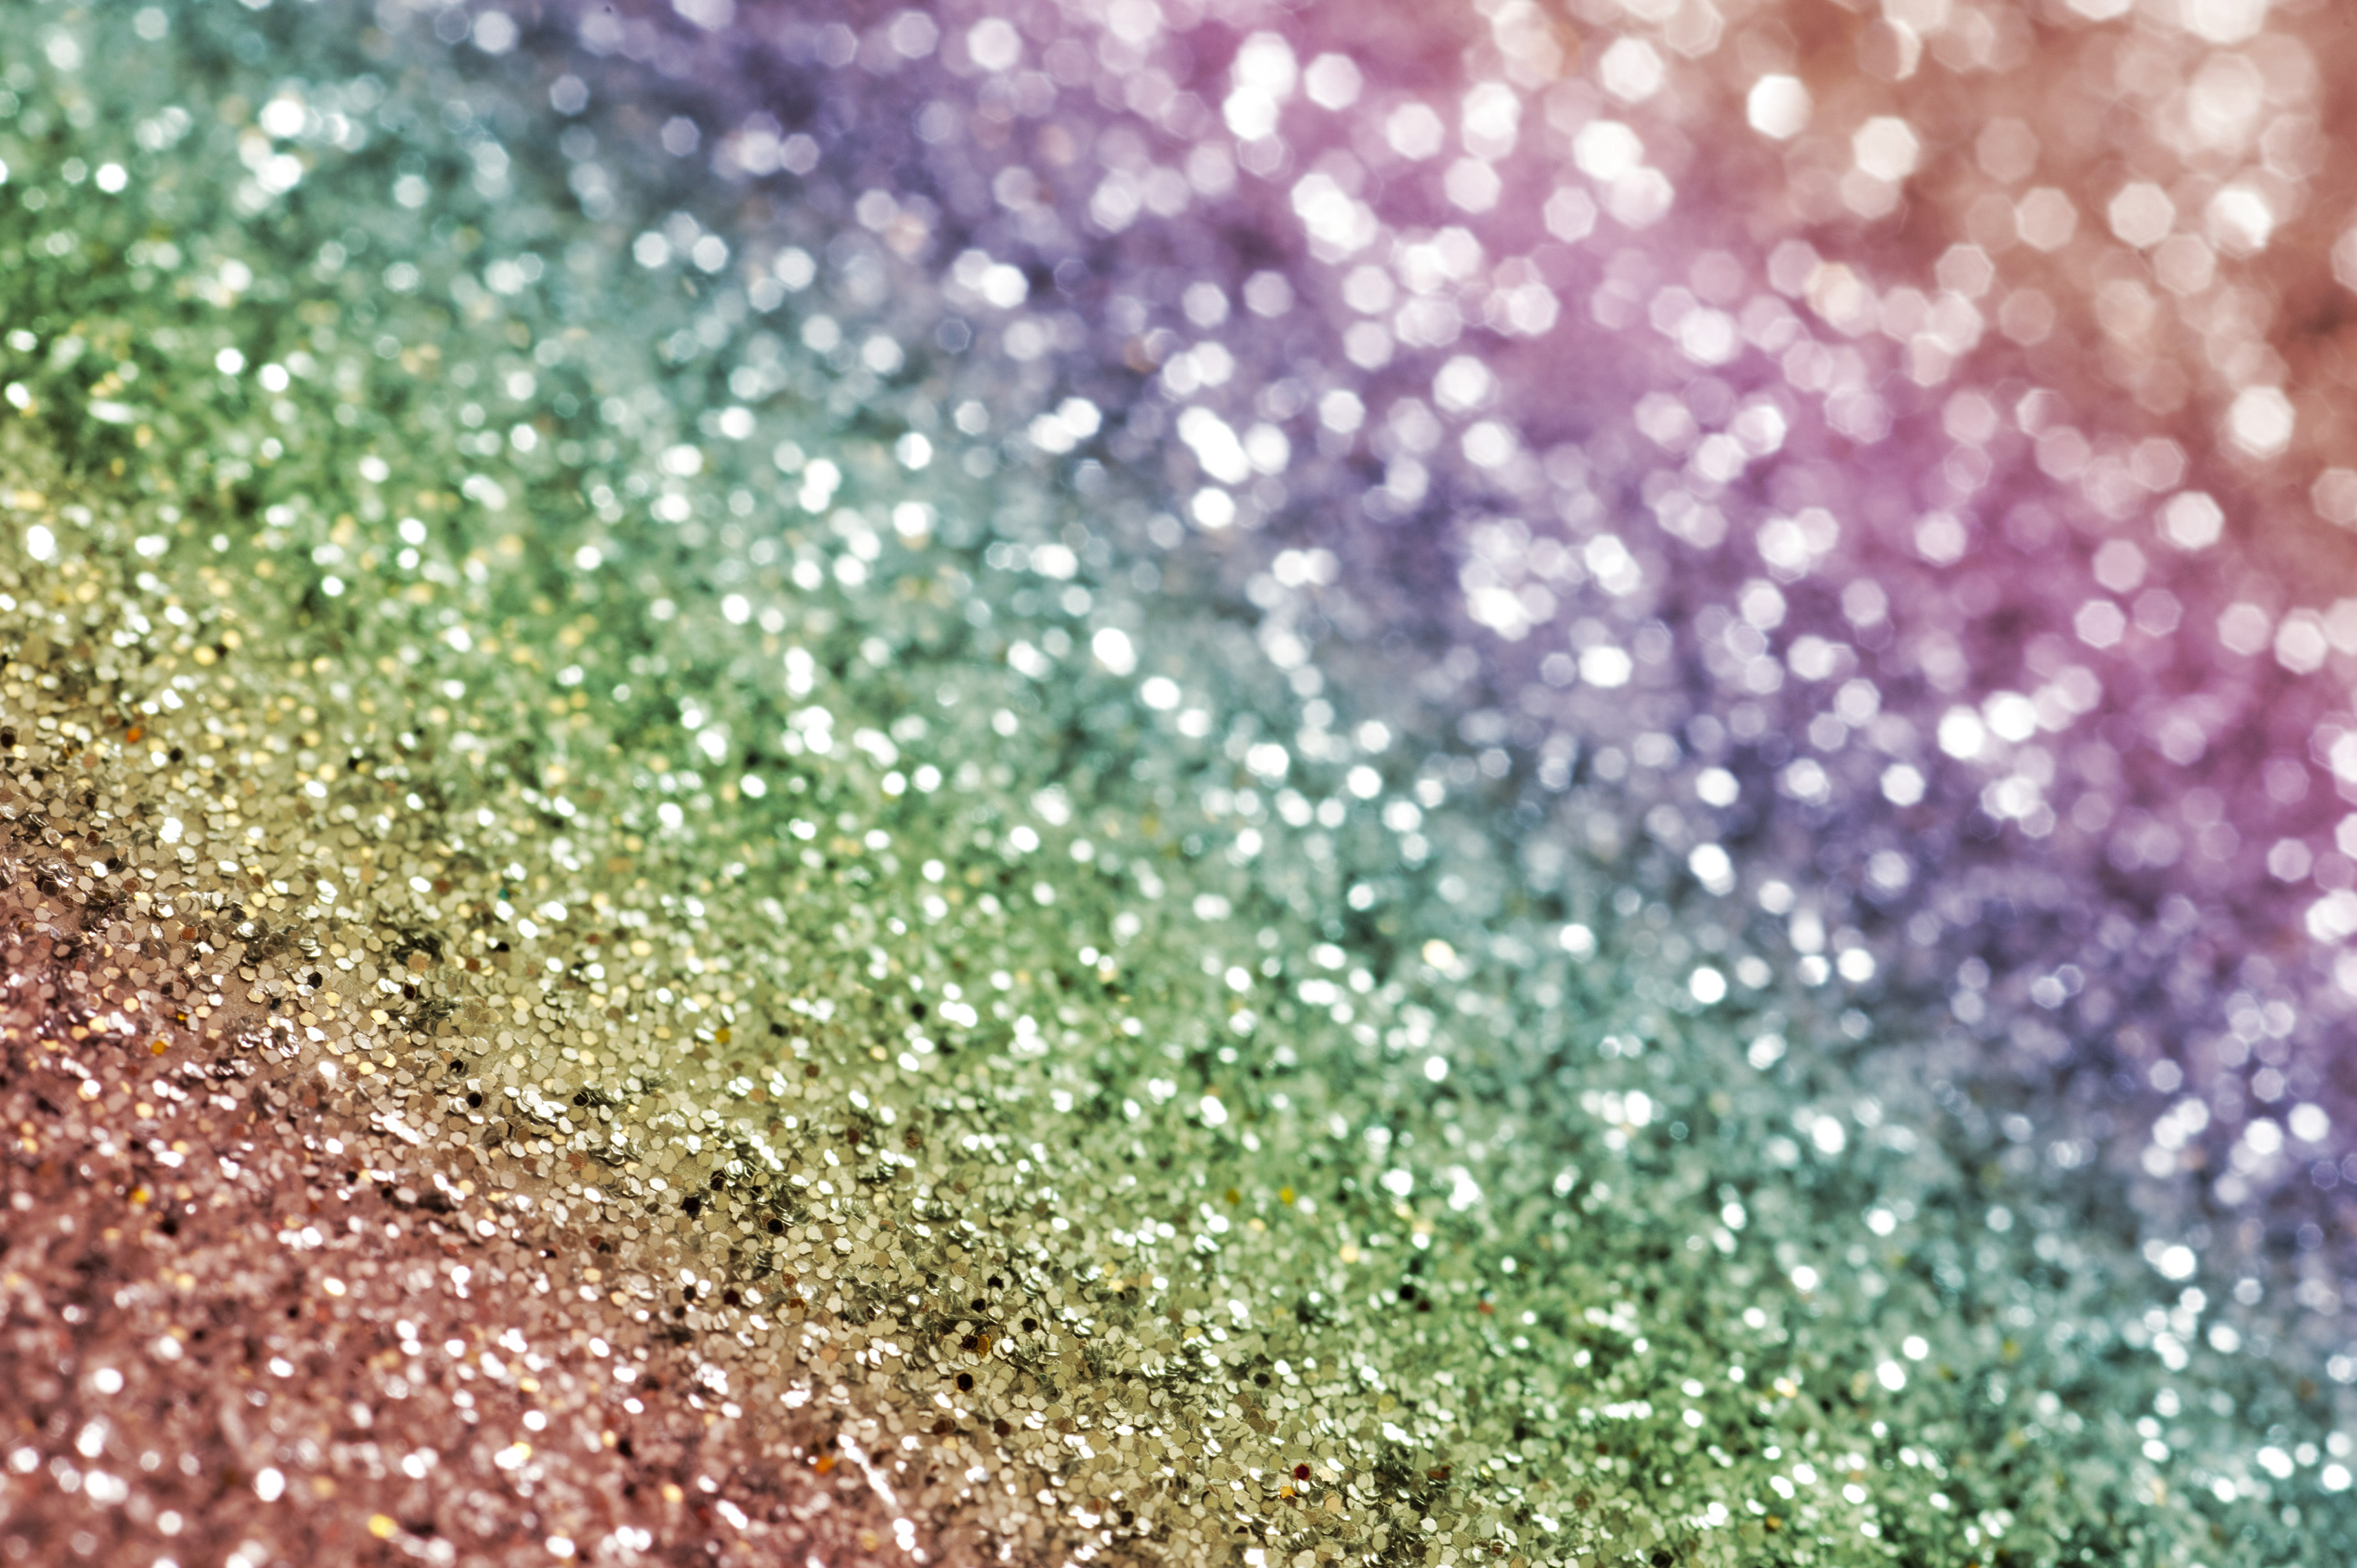 Rainbow colored glitter background in the colors of the spectrum arranged in a diagonal line for holiday or festive themed concepts